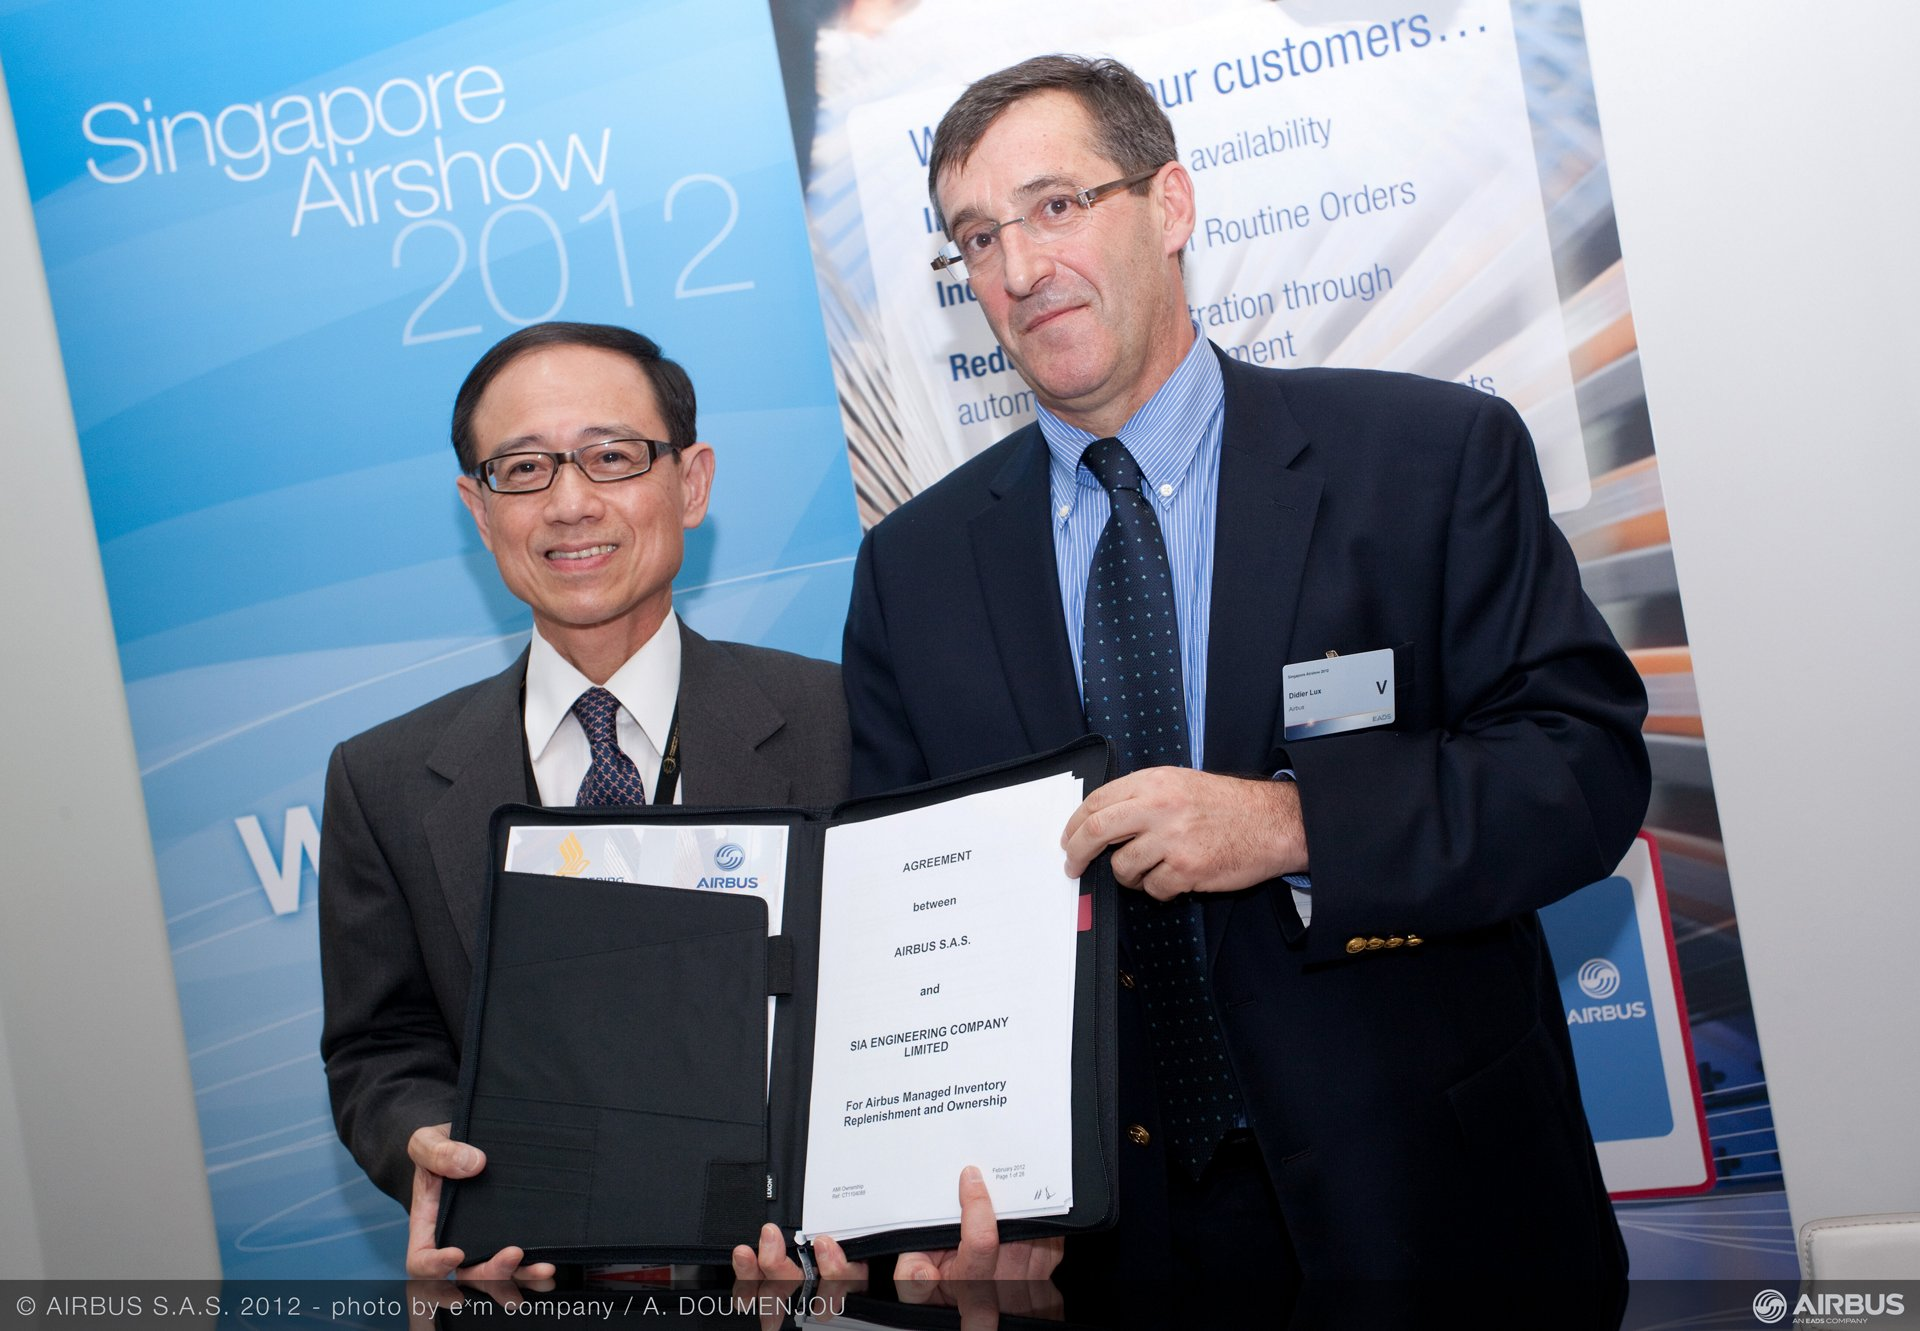 Singapore Airshow 2012 - SIA Engineering Company chooses Airbus Managed Inventory